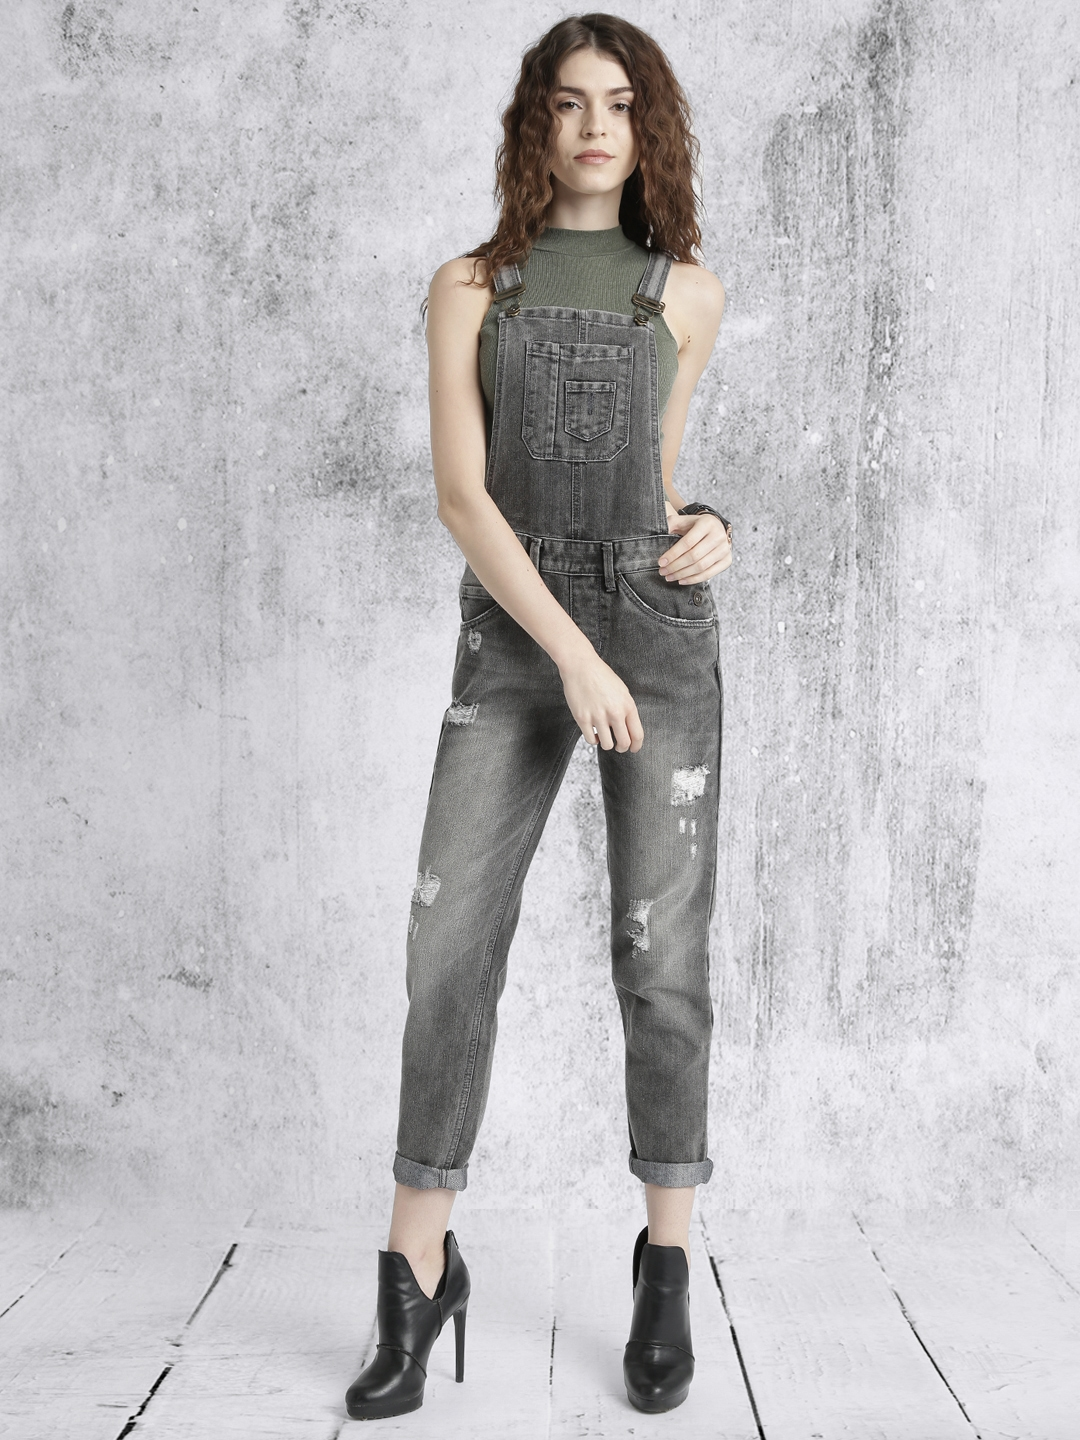 42eecd7215e Buy Roadster Charcoal Grey Washed Denim Dungarees - Dungarees for ...